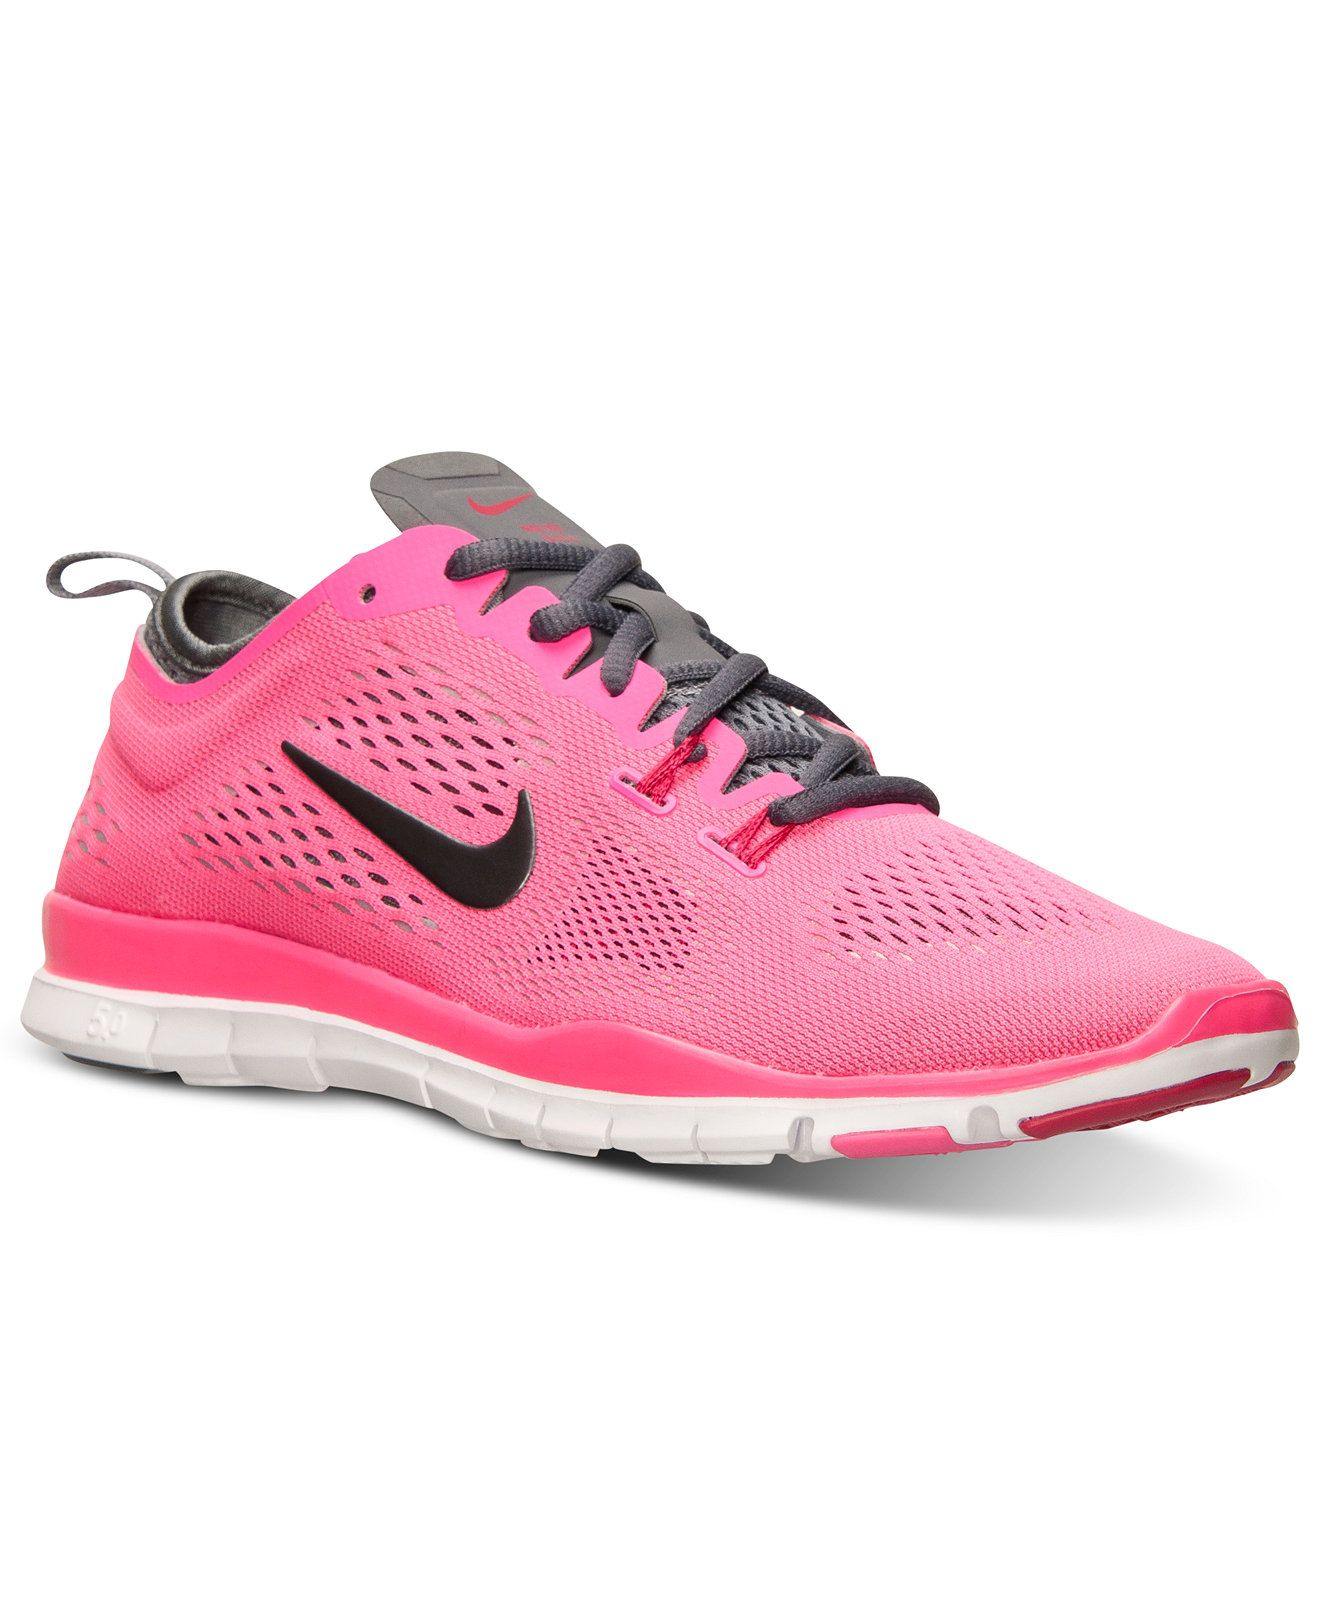 half off a6e5e 1ba7e reduced nike womens free tr fit 4 training sneakers from finish line finish  line athletic shoes